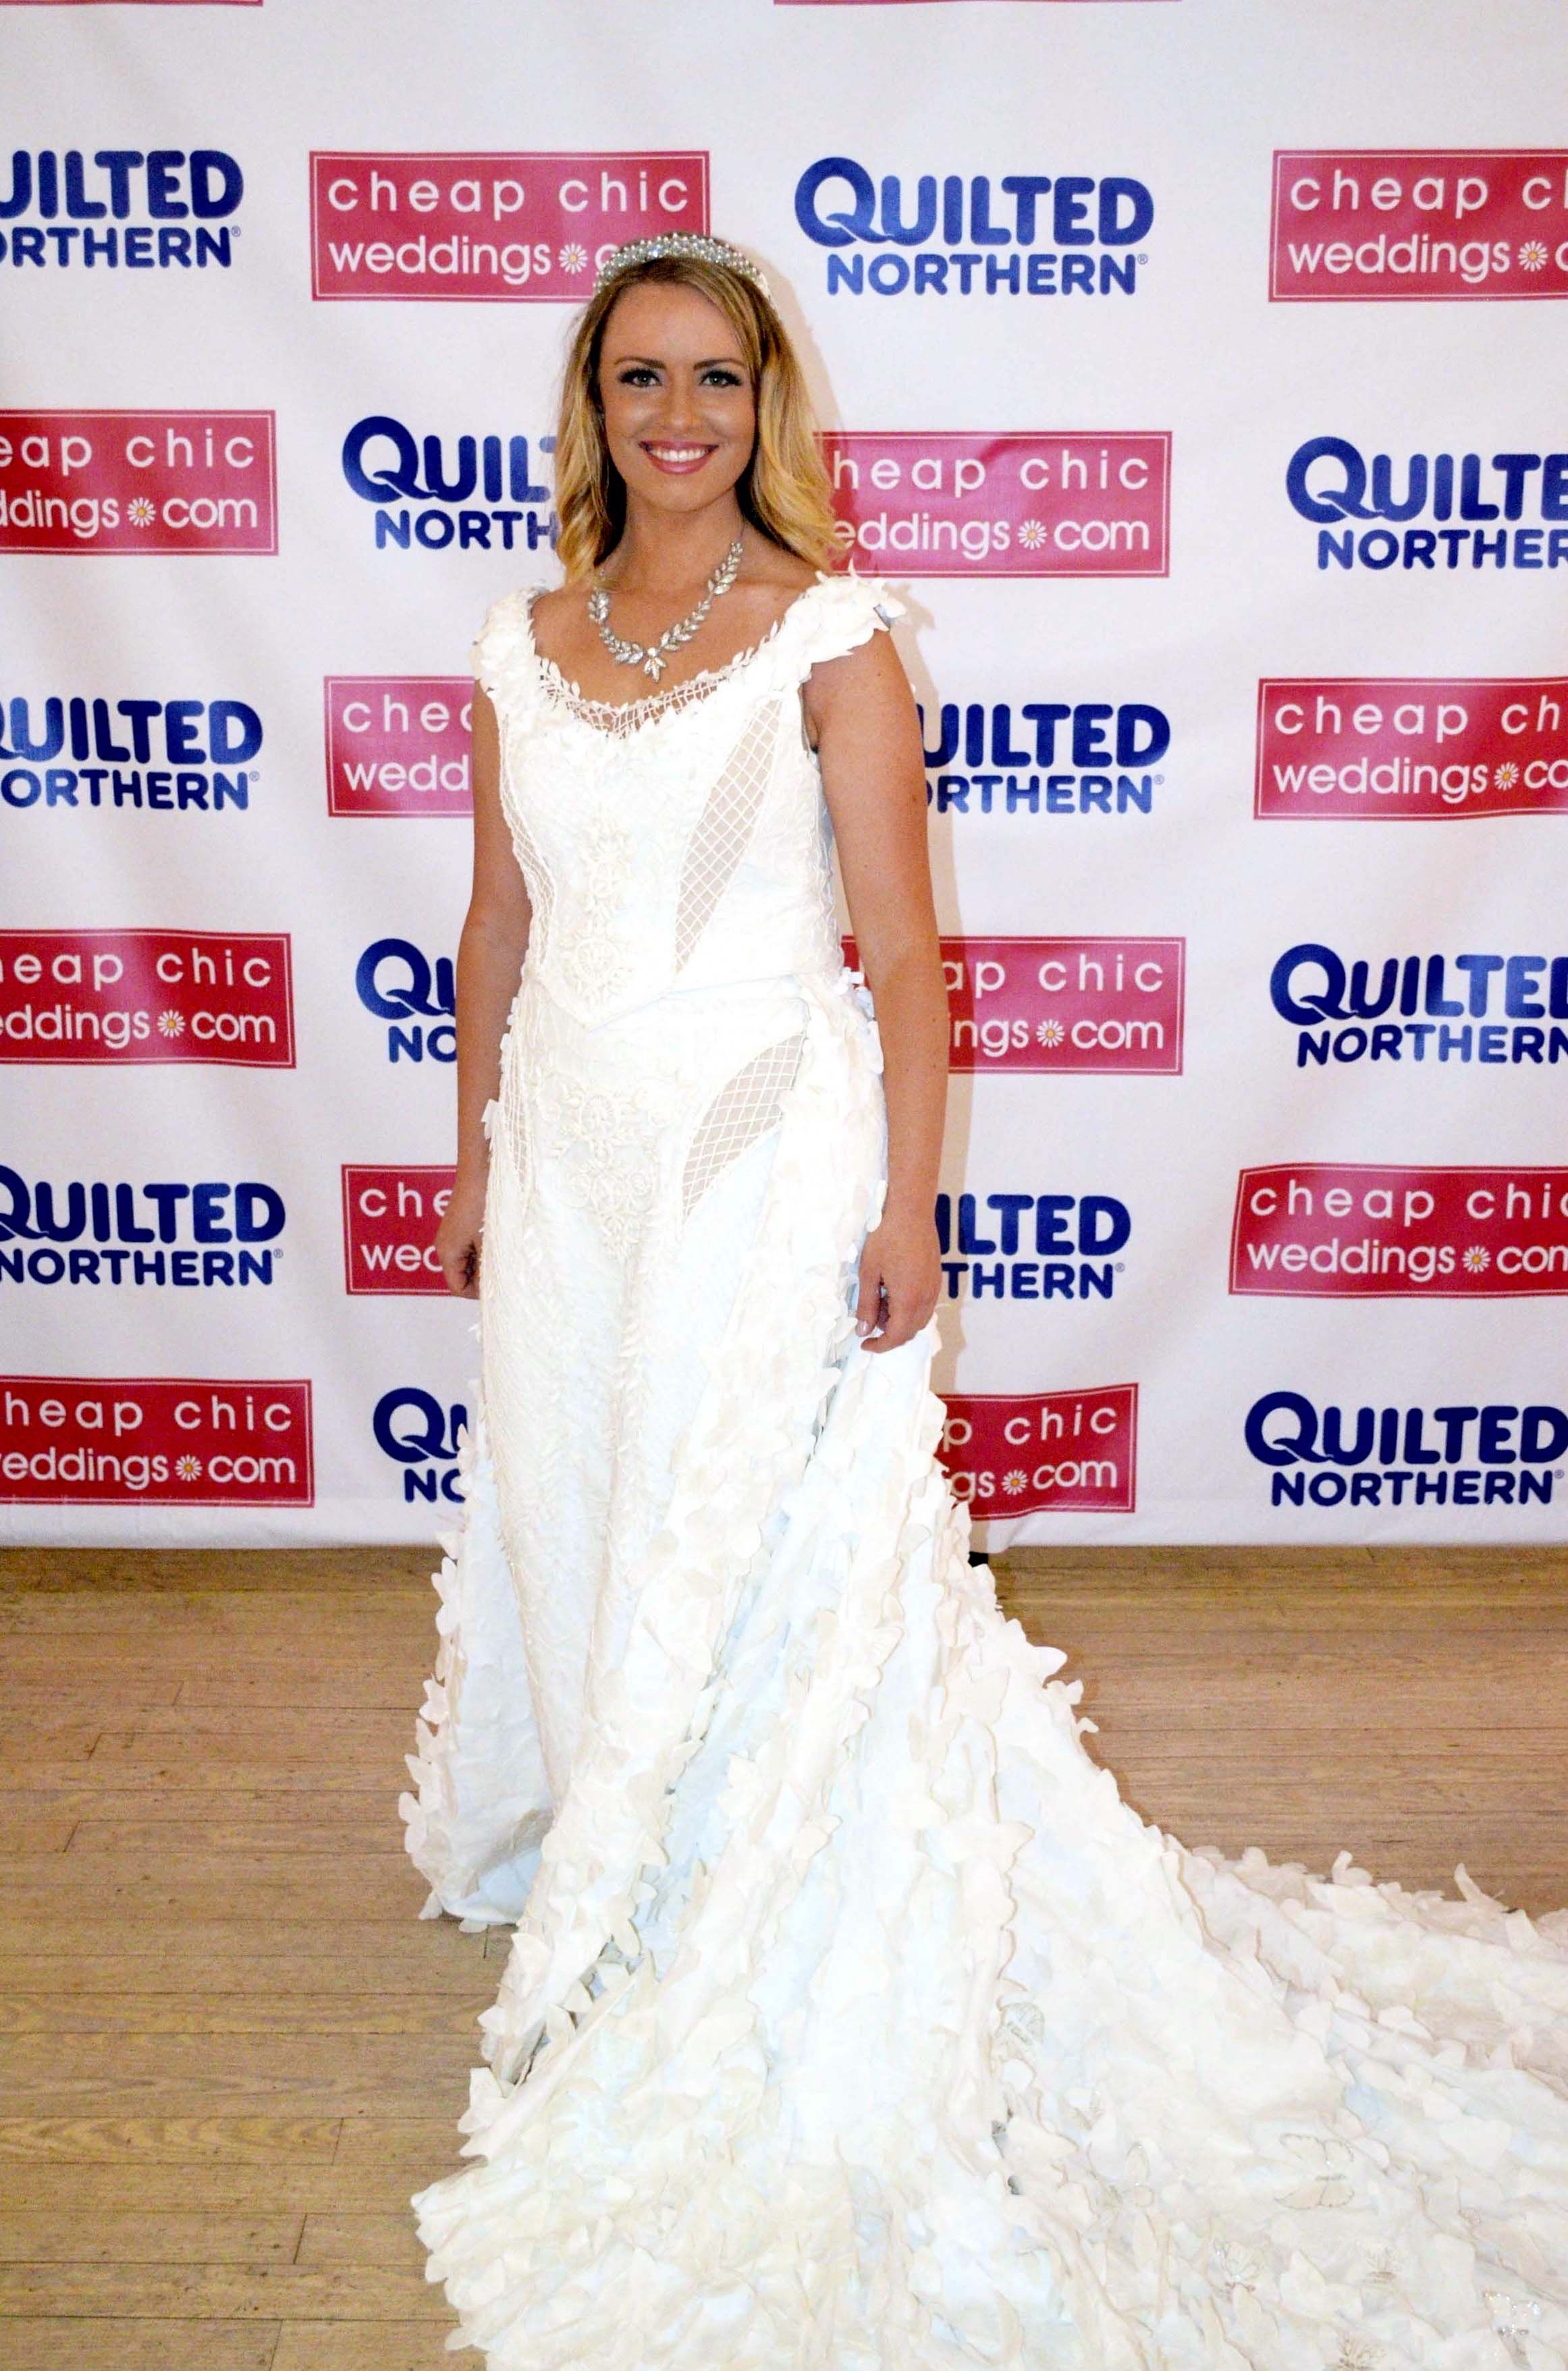 1st Place Winner Of The 2017 Toilet Paper Wedding Dress Contest Retro Wedding Dresses Toilet Paper Wedding Dress Wedding Dress Preservation